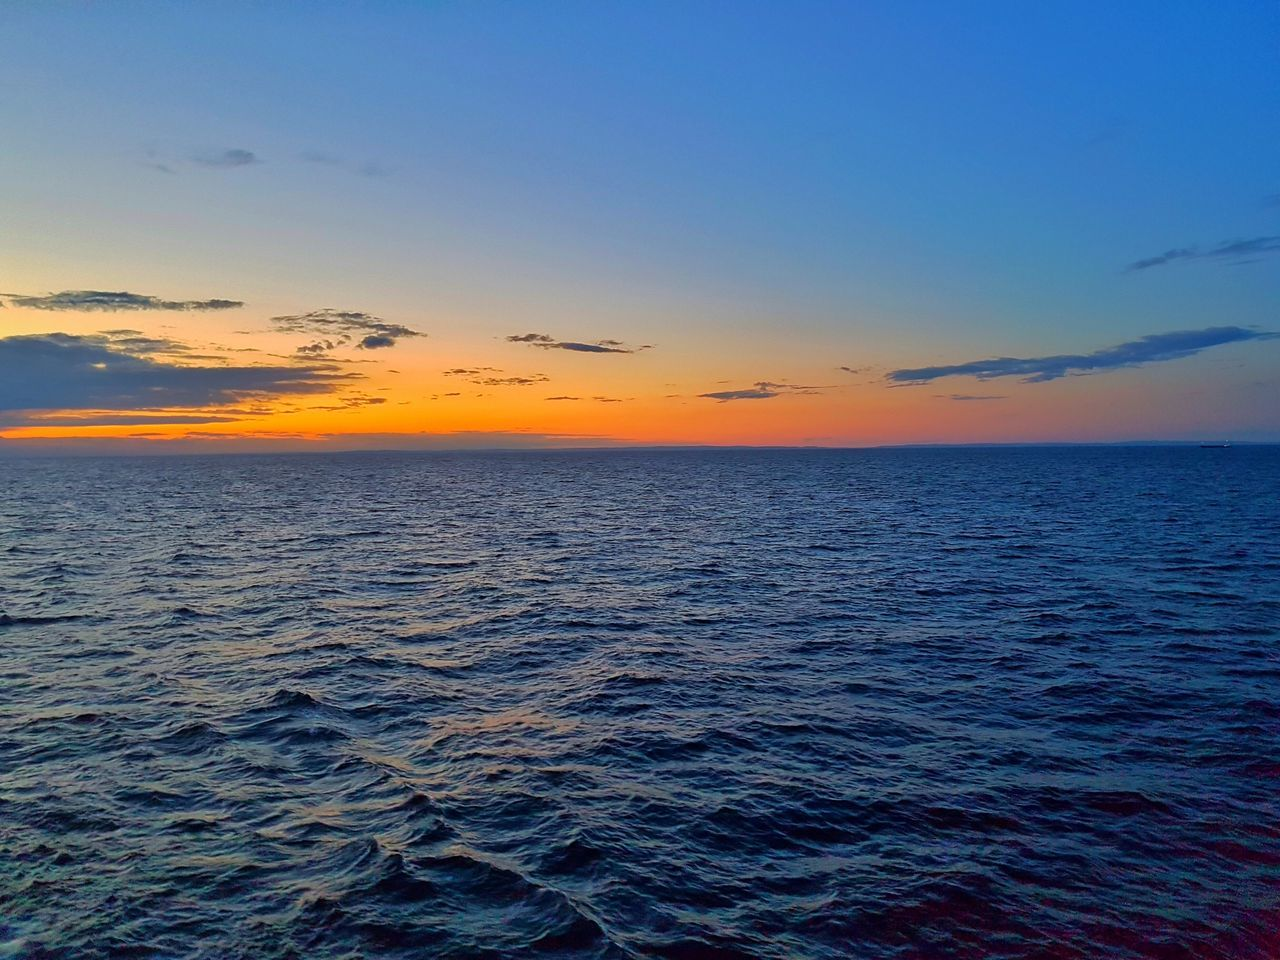 Horizon Over Water Sea Scenics Sunset Water Beauty In Nature Tranquil Scene Tranquility Waterfront Seascape Blue Sky Nature Idyllic Rippled Majestic Outdoors Non-urban Scene Cloud - Sky Vibrant Color